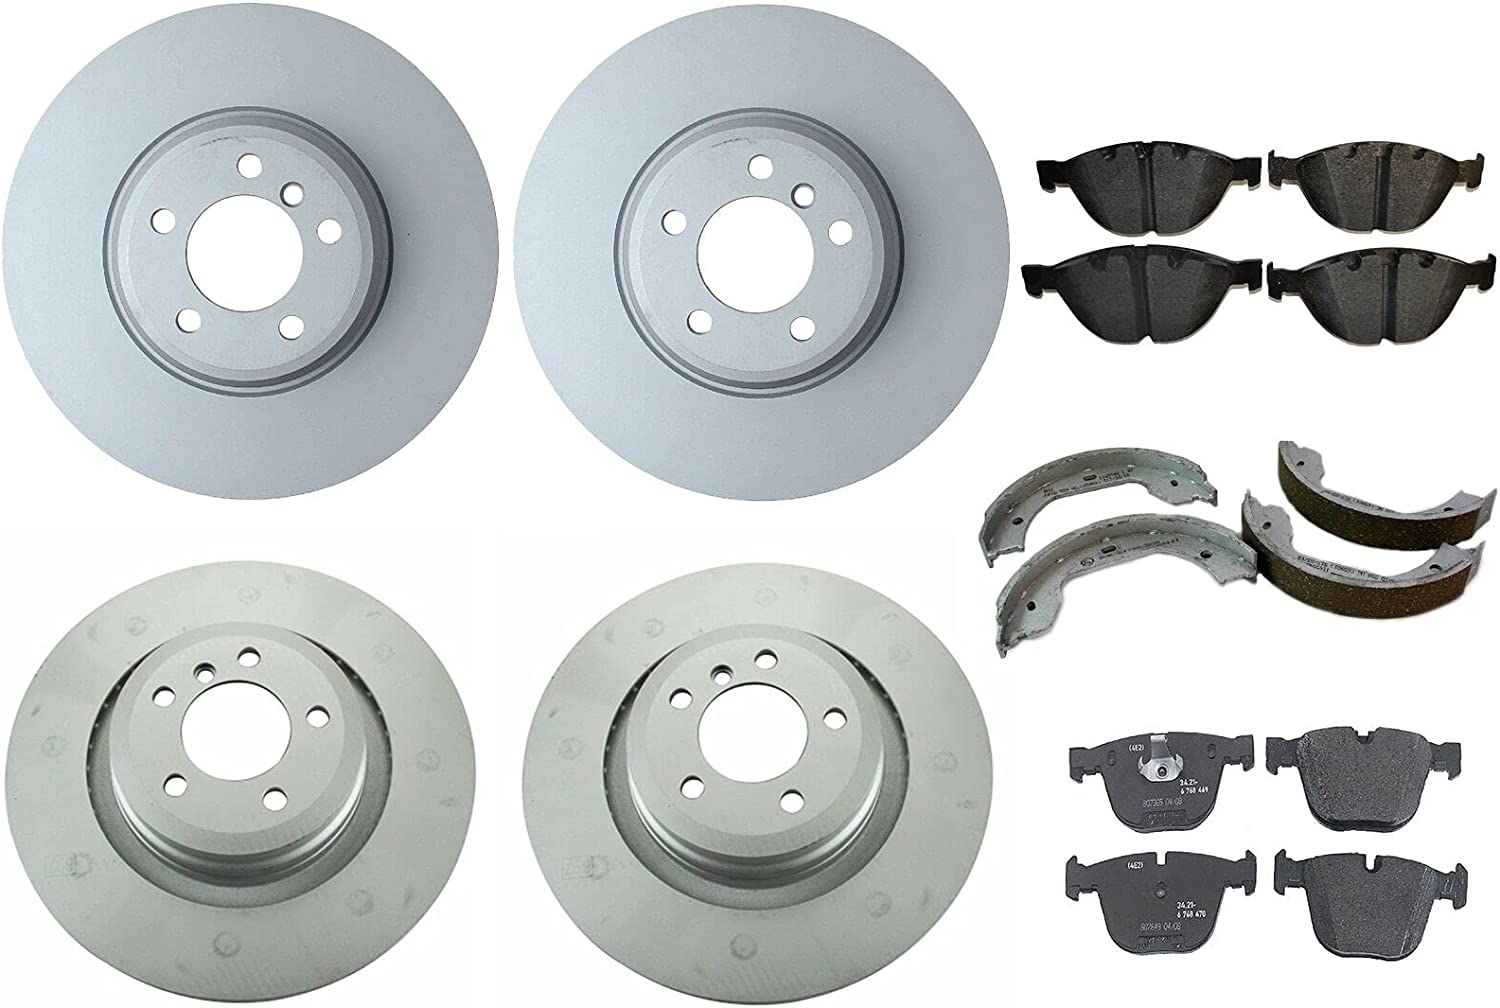 Front and Rear Brake Regular Luxury goods store kit Disc Compatible Pads Rotors Shoes wit